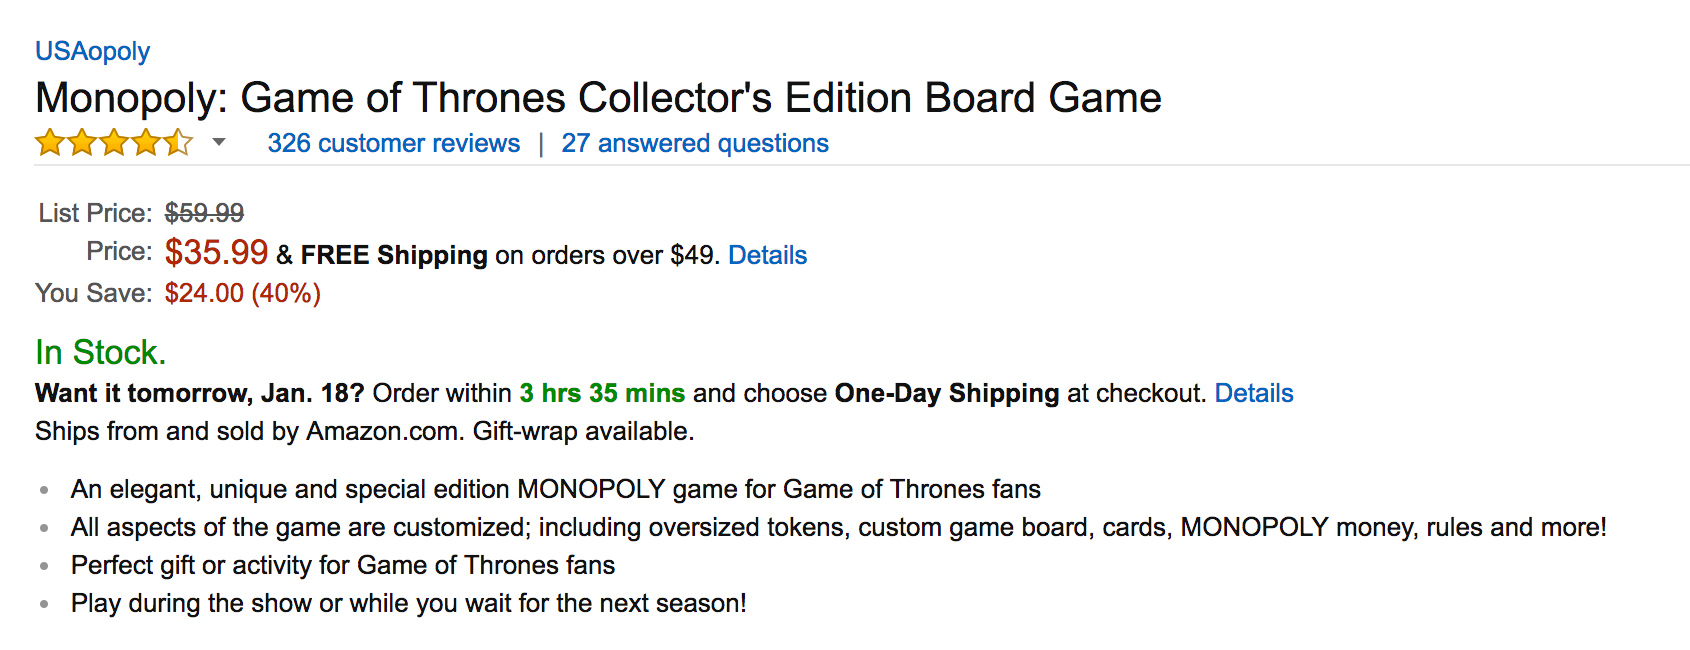 monopoly-game-of-thrones-collectors-edition-board-game-4